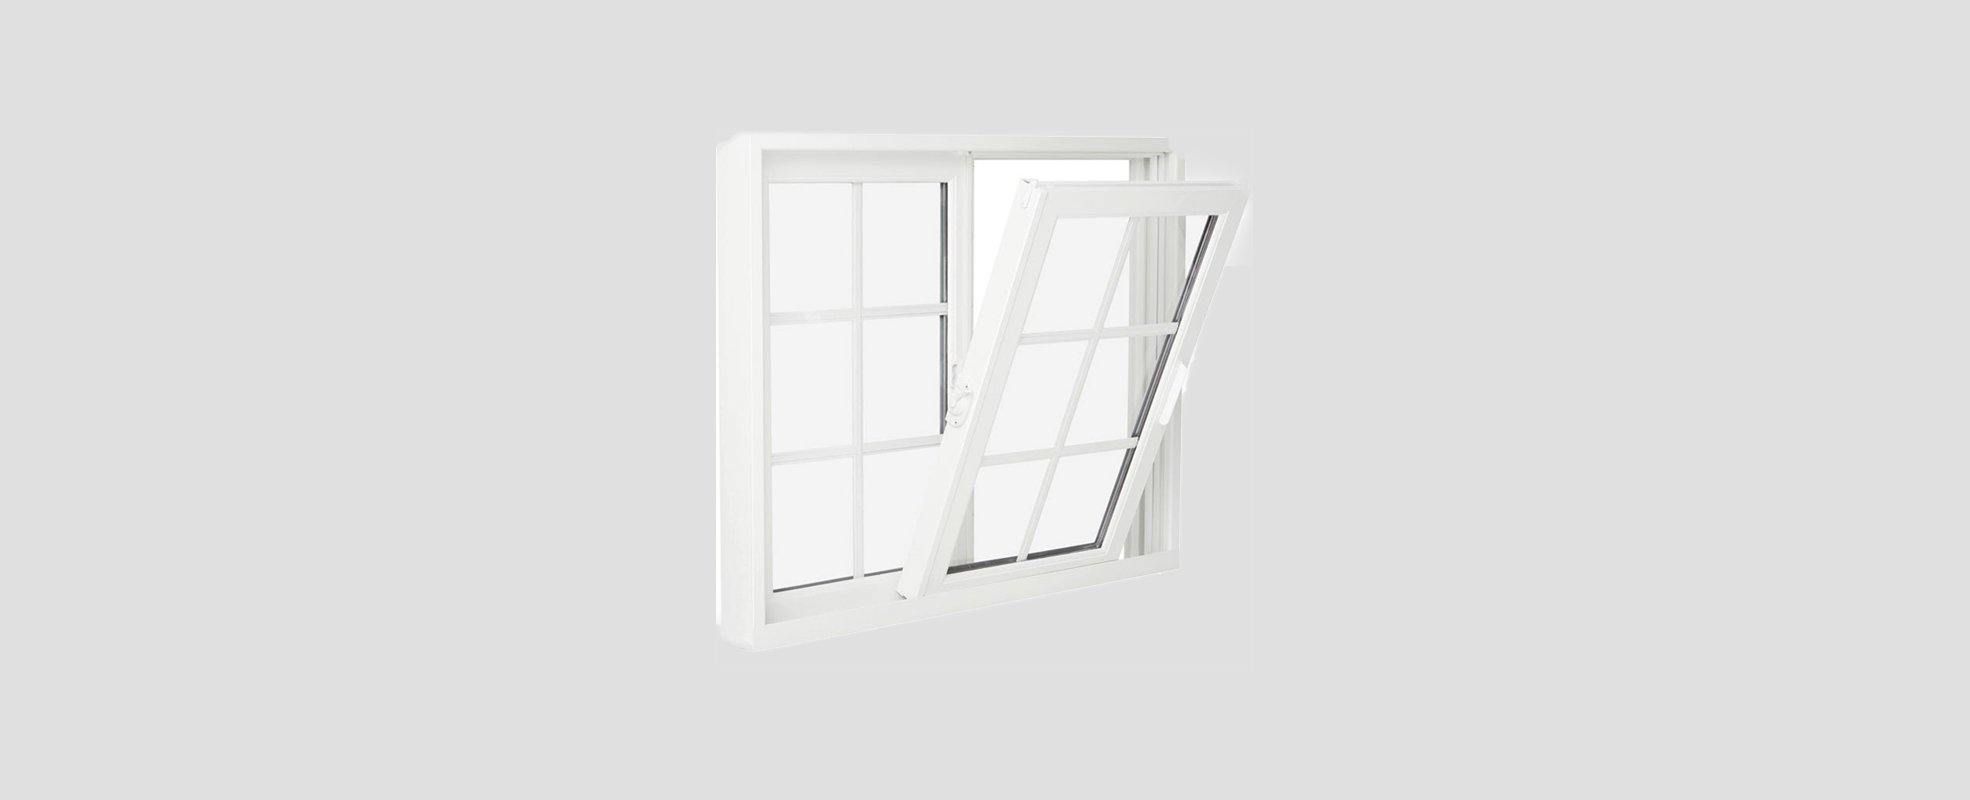 Durable Infinity Sliding and Gliding Windows